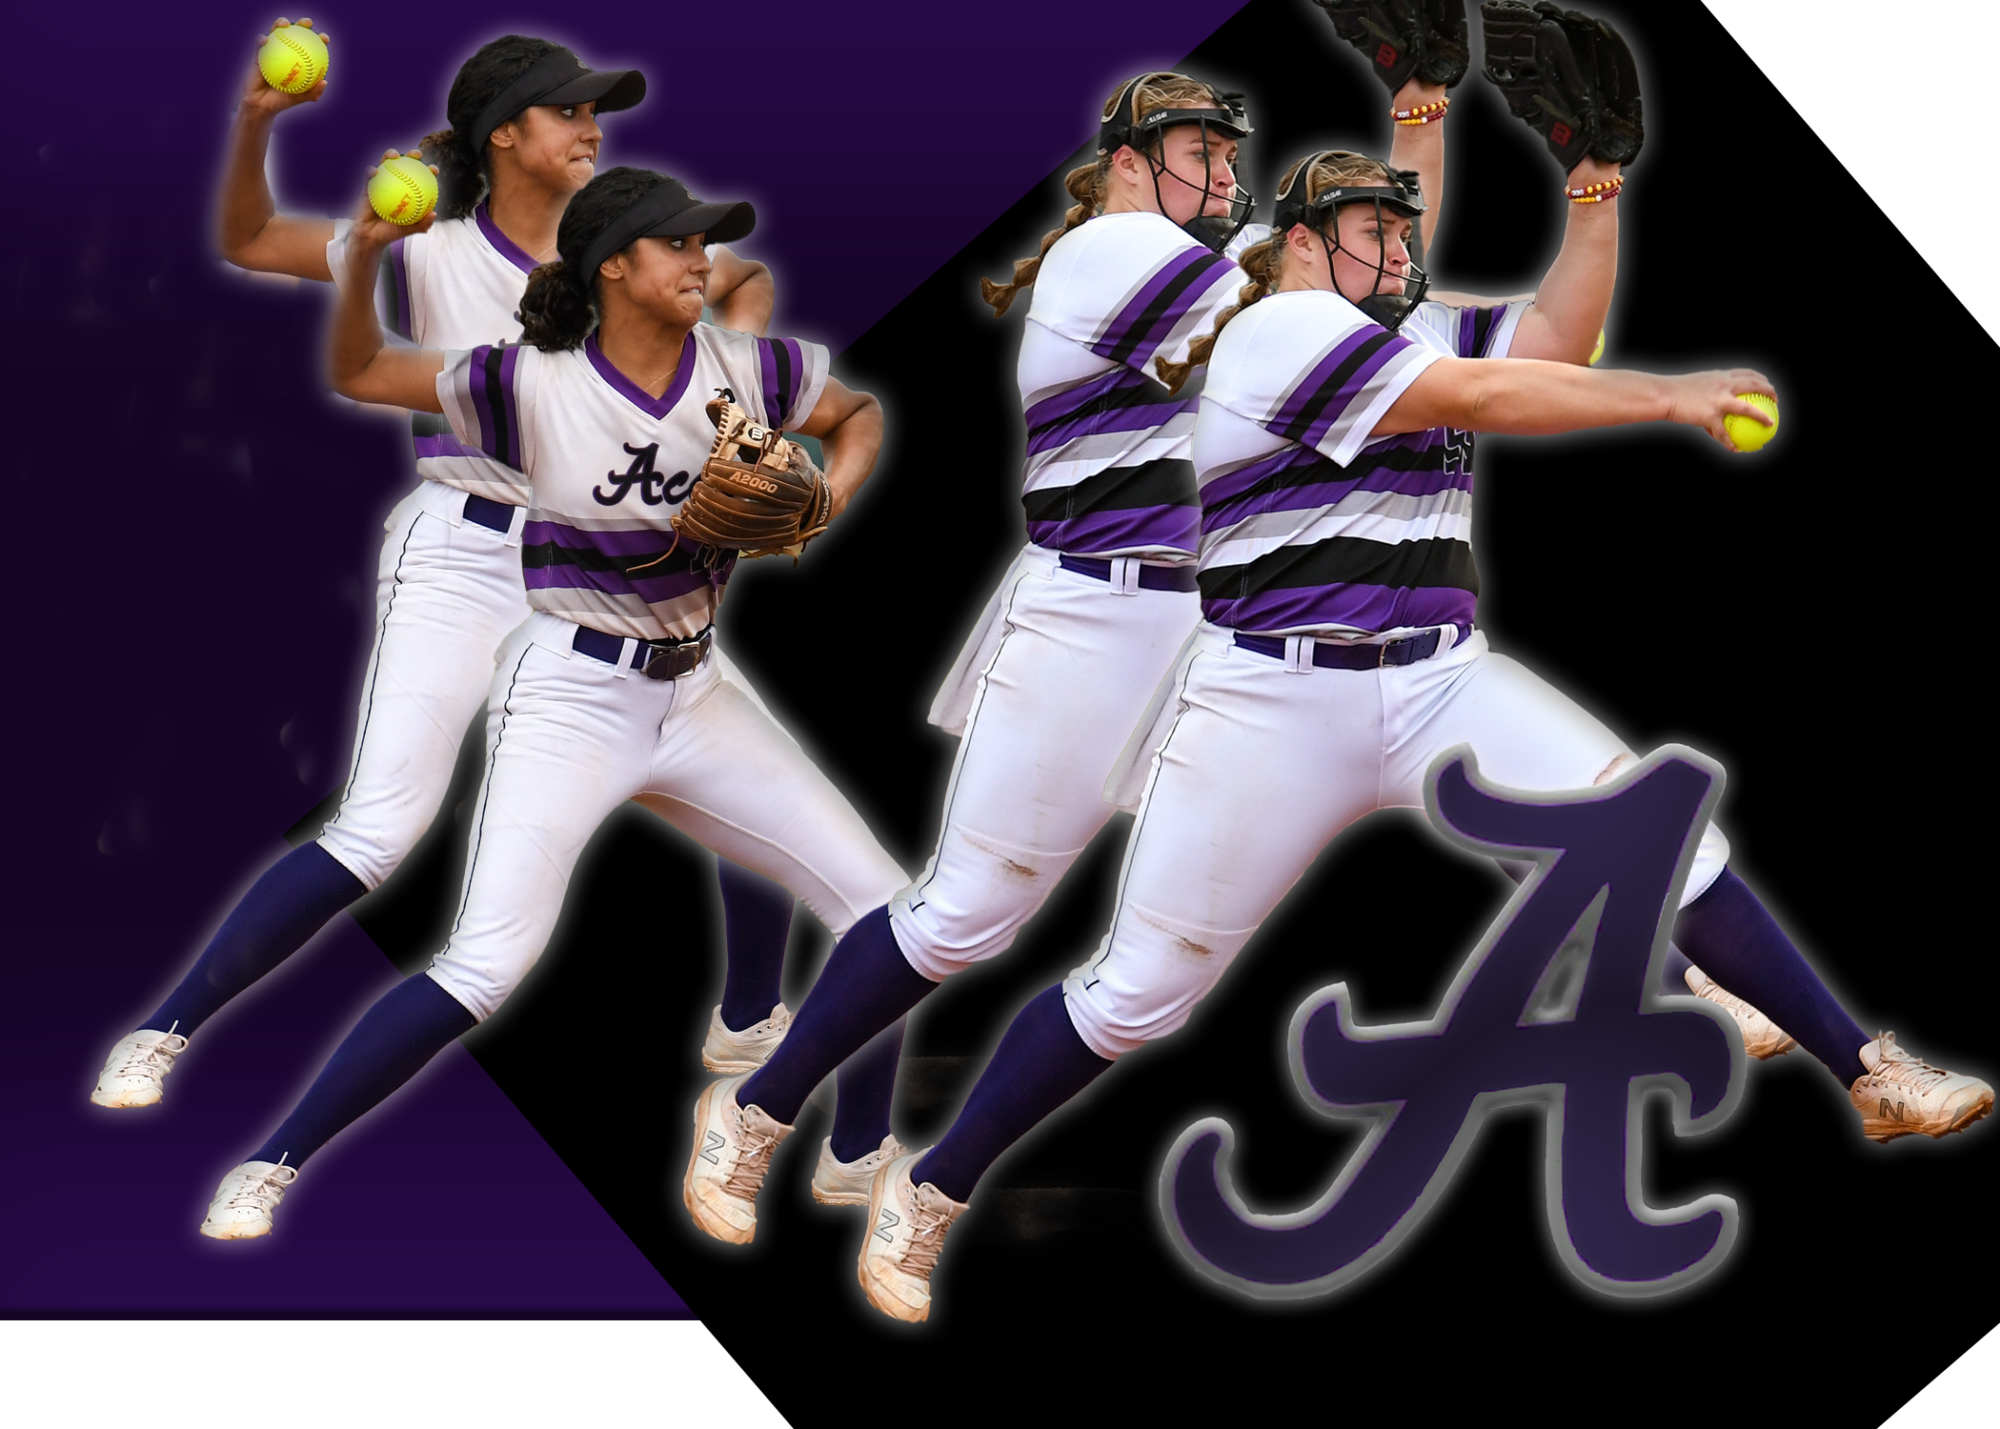 Aces Fastpitch Club